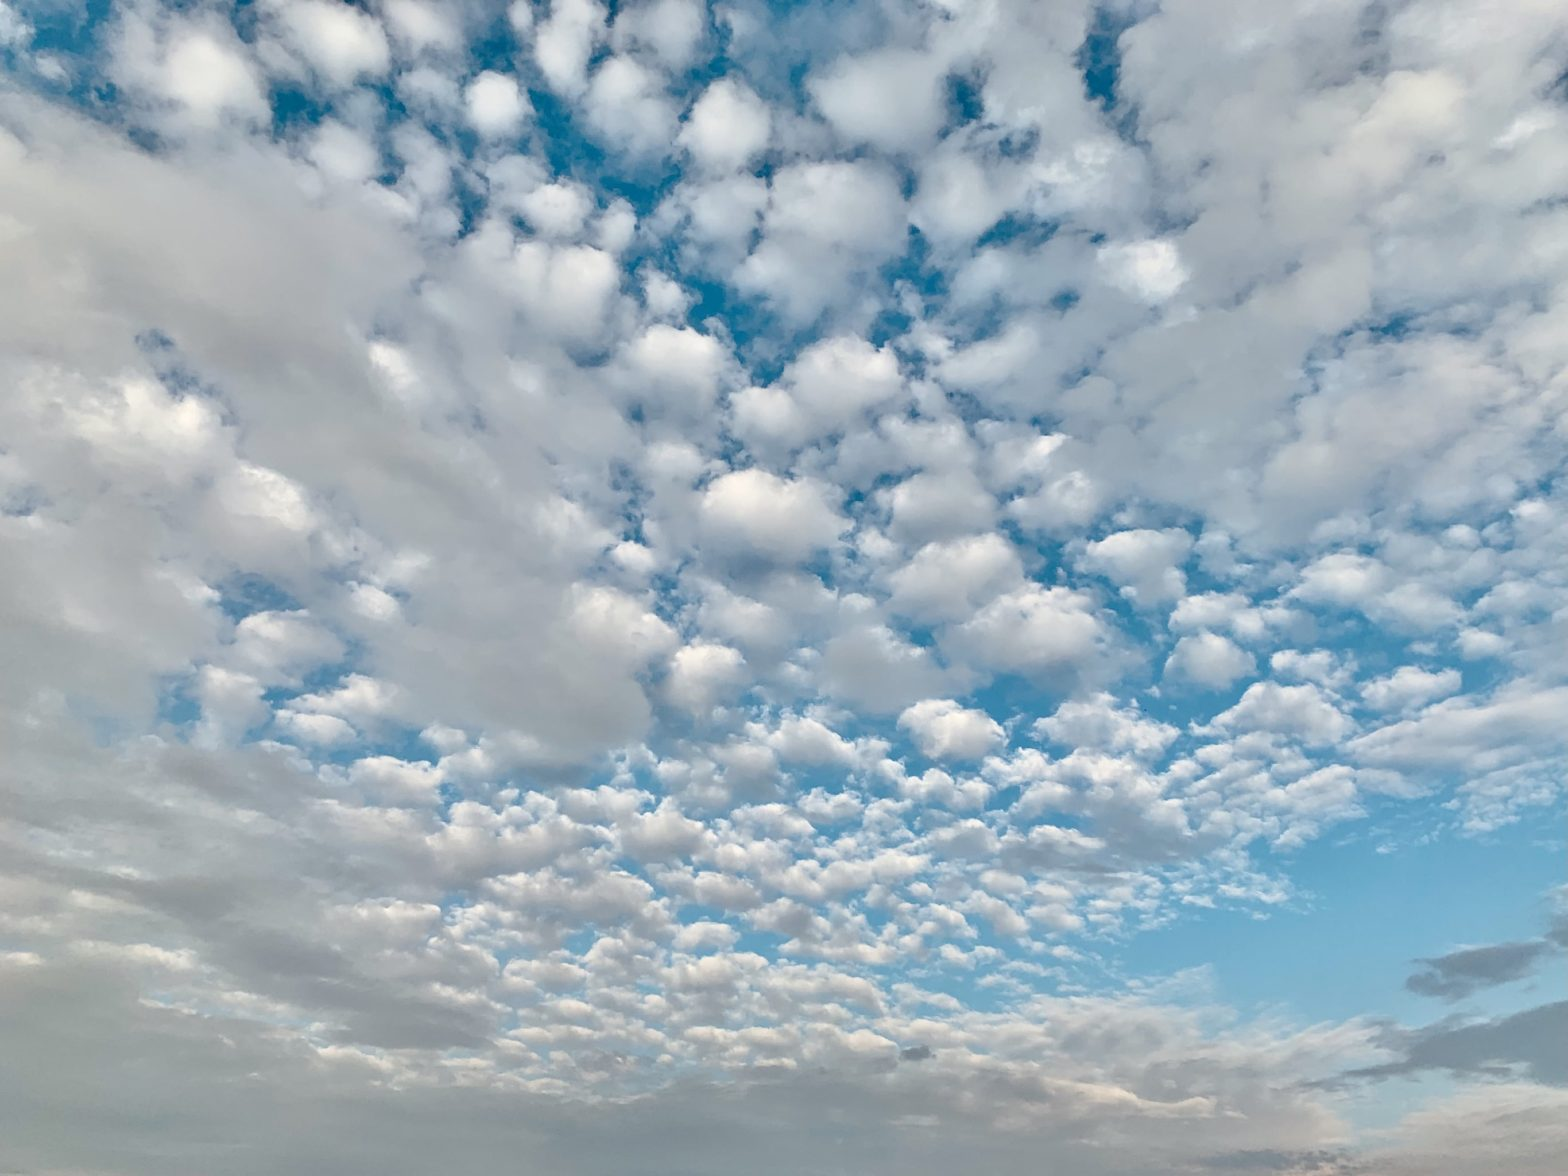 Scattered clouds in the sky